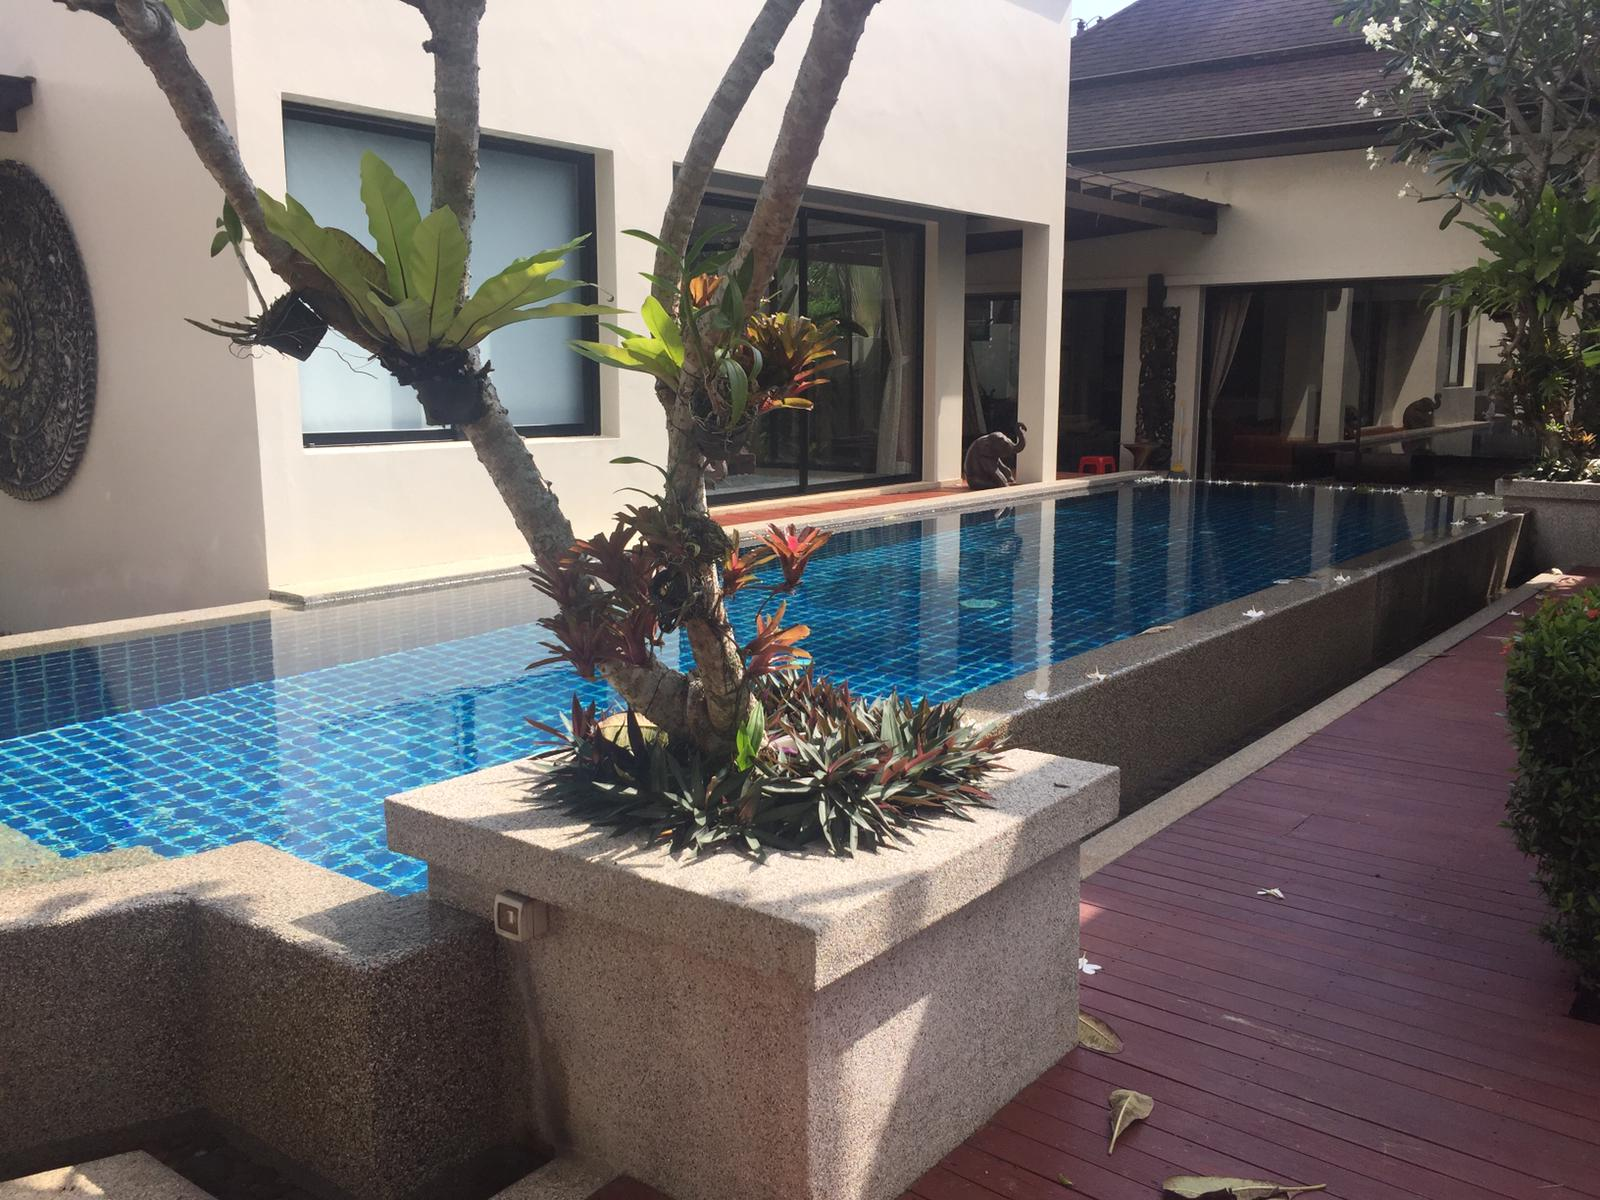 Layan Beach Spacious 4 Bedroom Pool Villa-142302af-77d8-4bb4-93ca-49d540c99fca.jpg